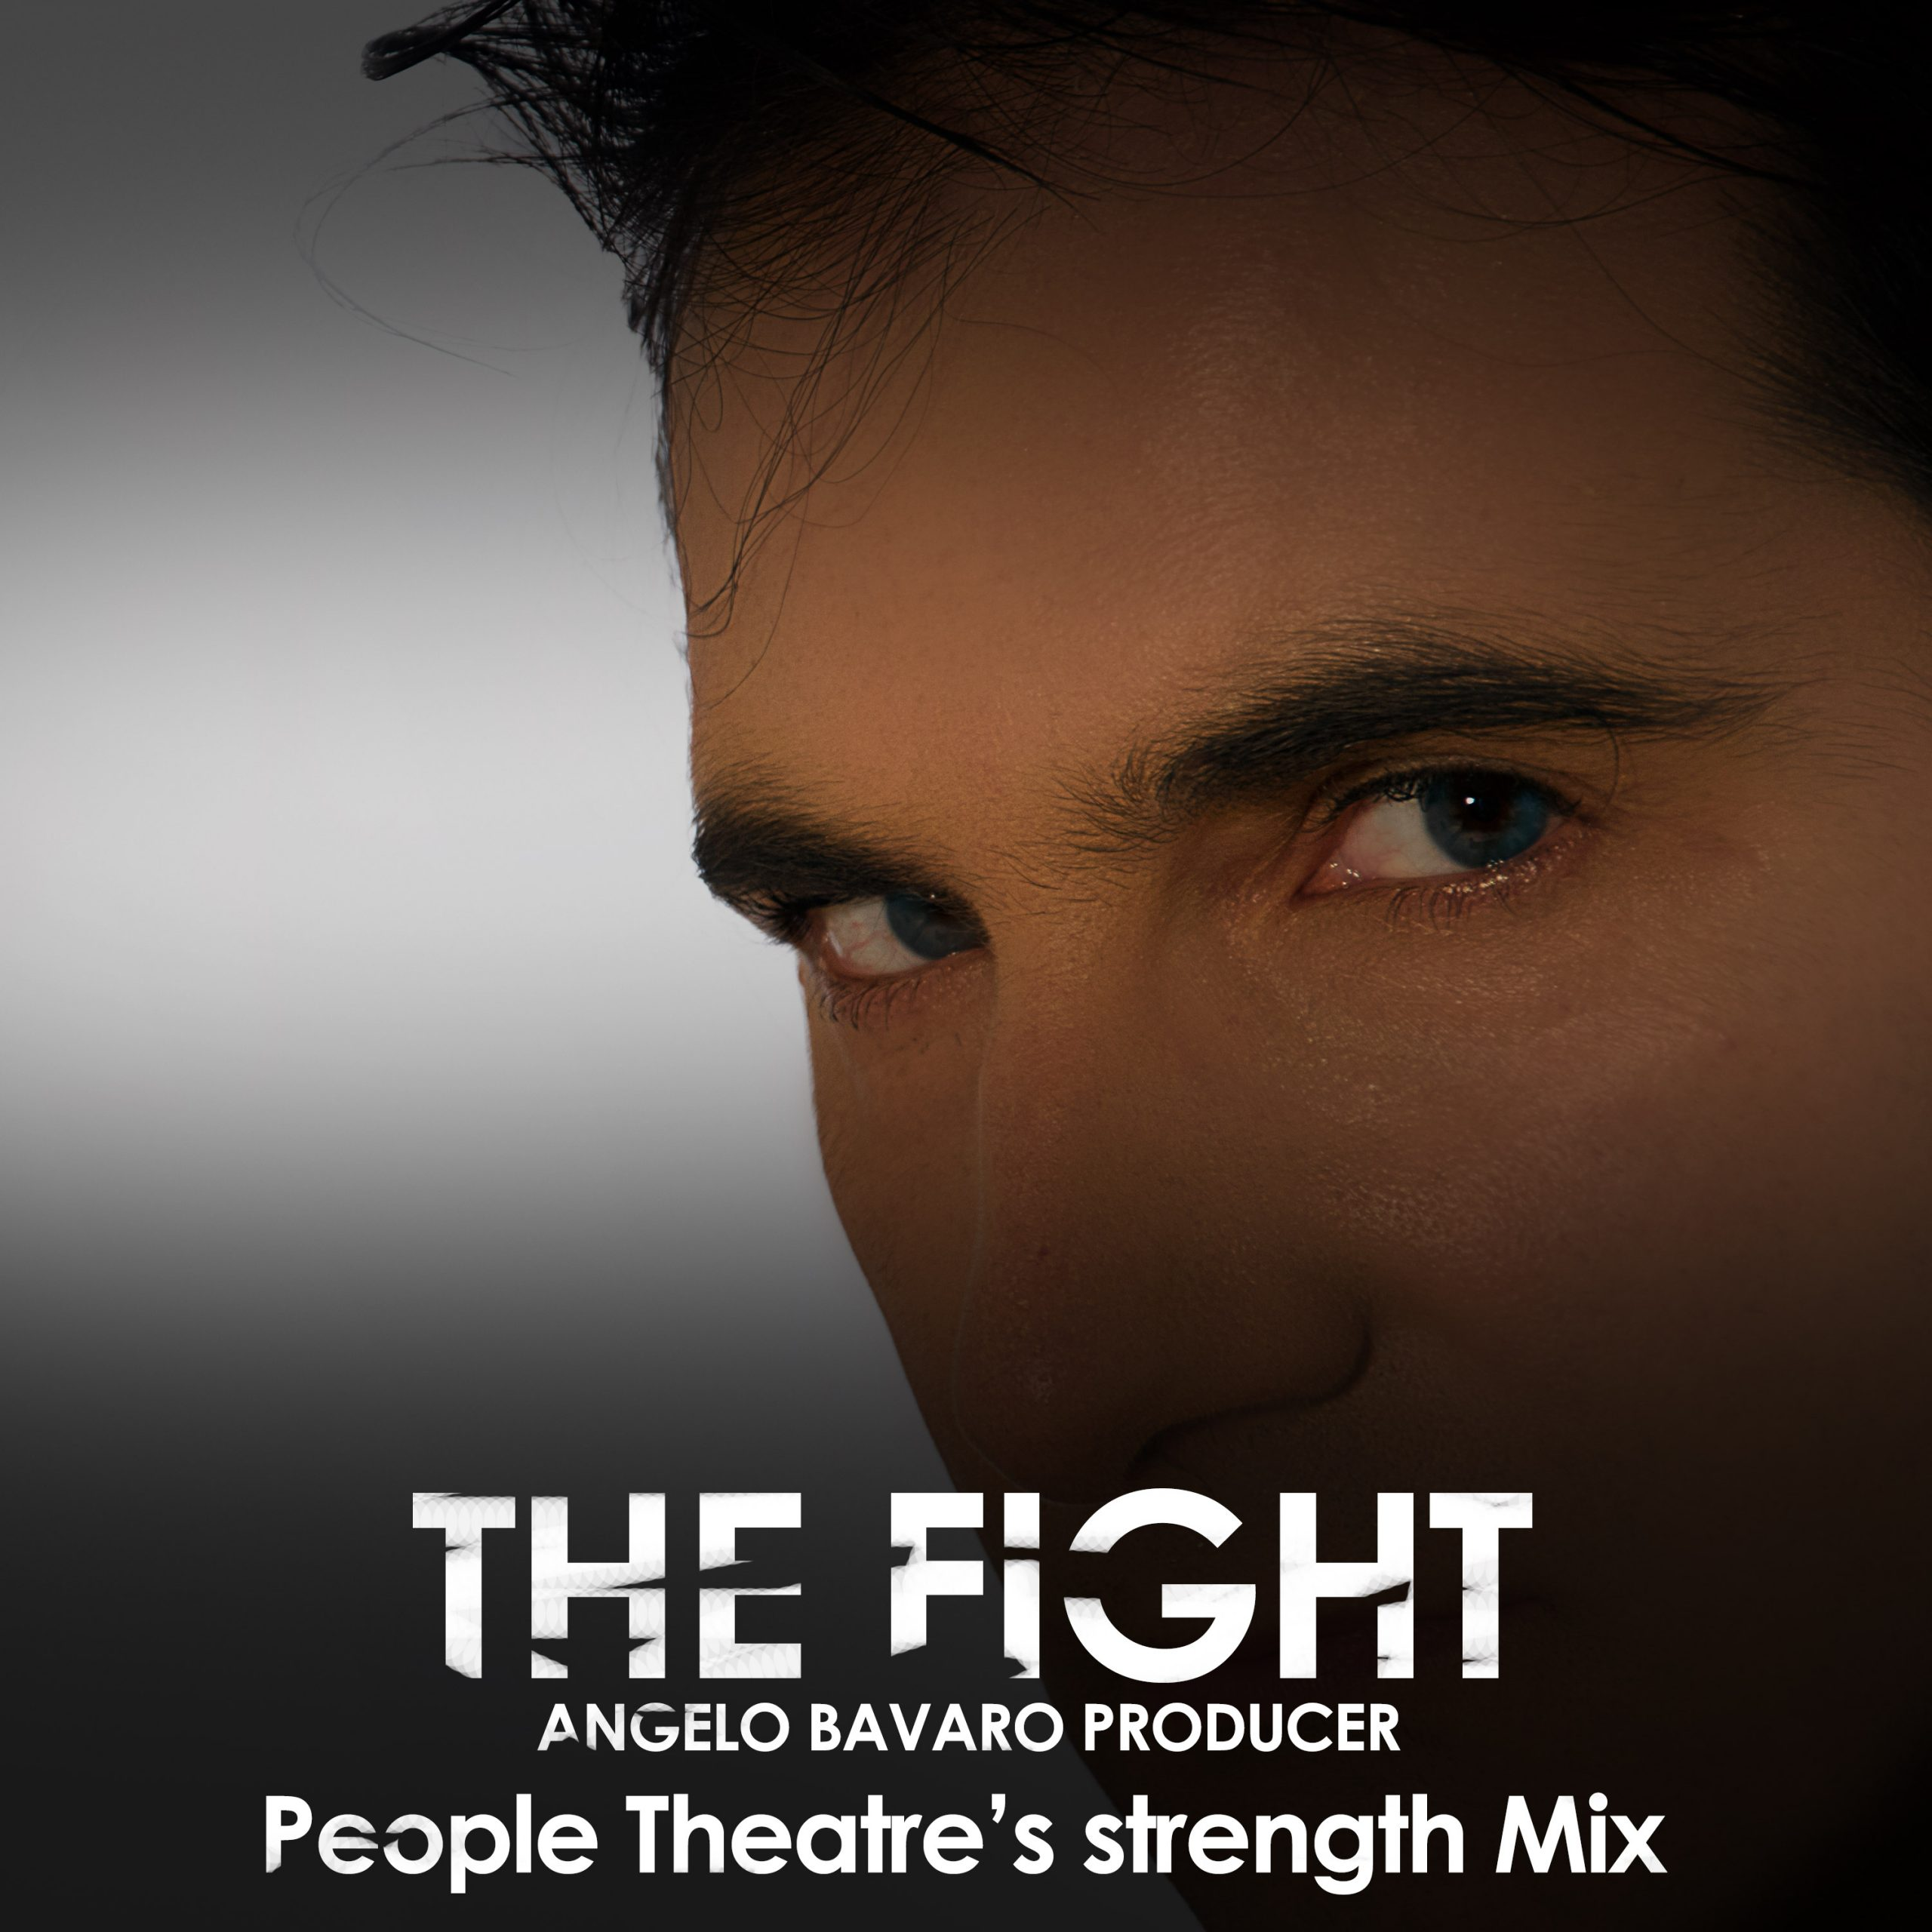 The Fight - People Theatre's Strength Mix